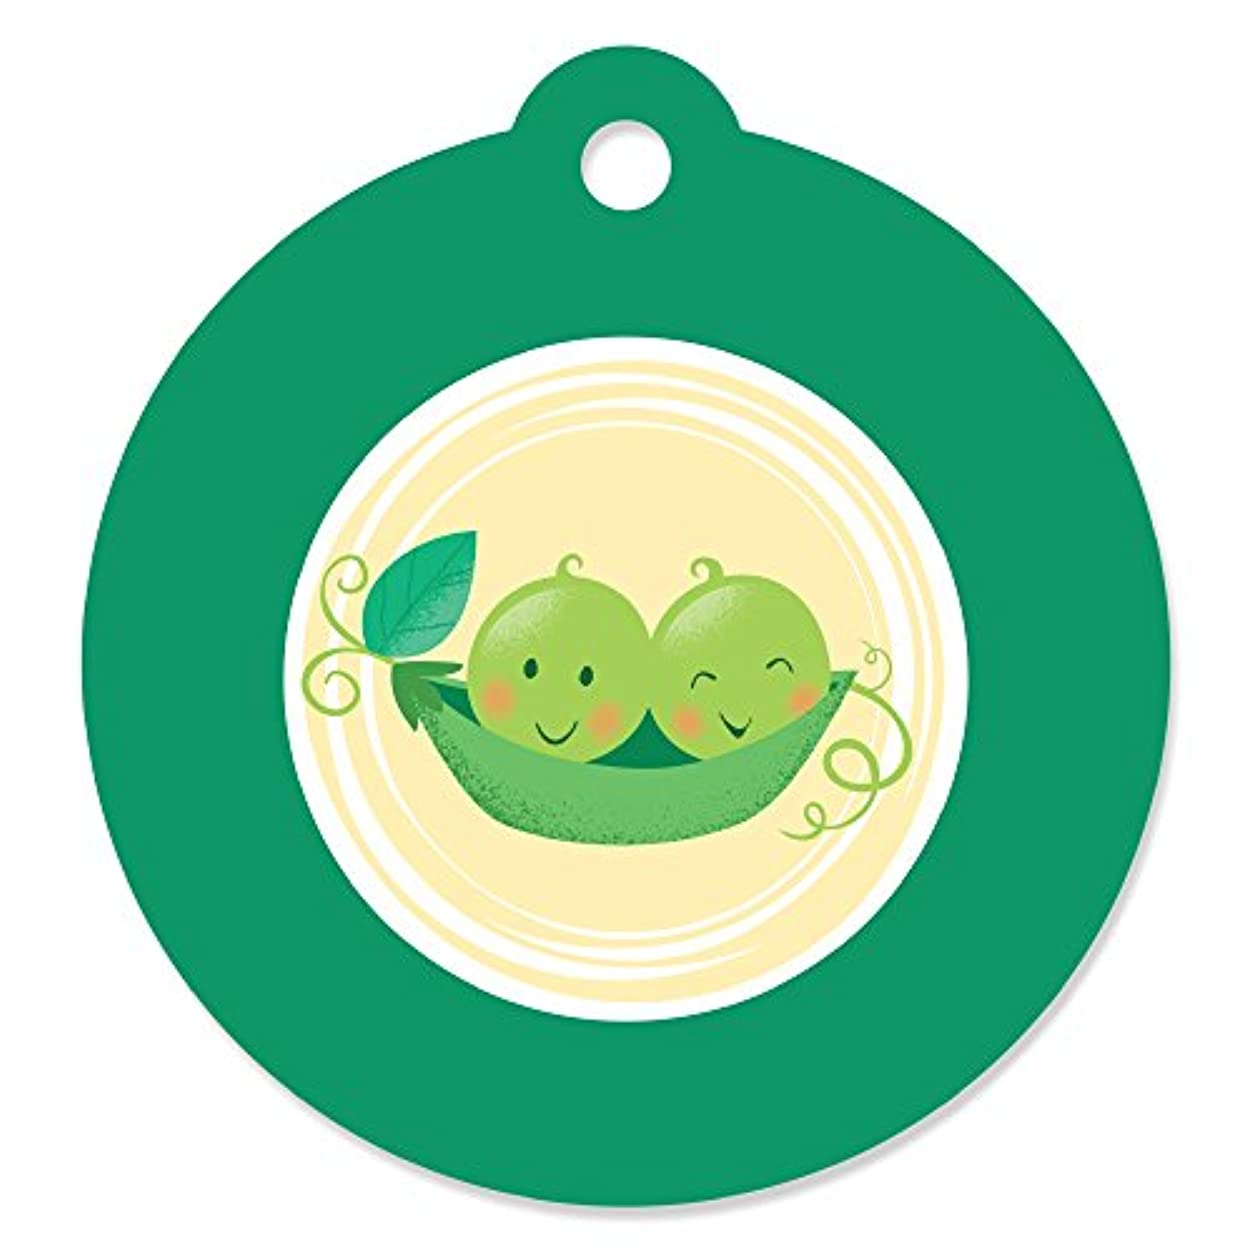 Double The Fun - Twins Two Peas in a Pod - Baby Shower or First Birthday Party Favor Gift Tags (Set of 20) nvlh260862771